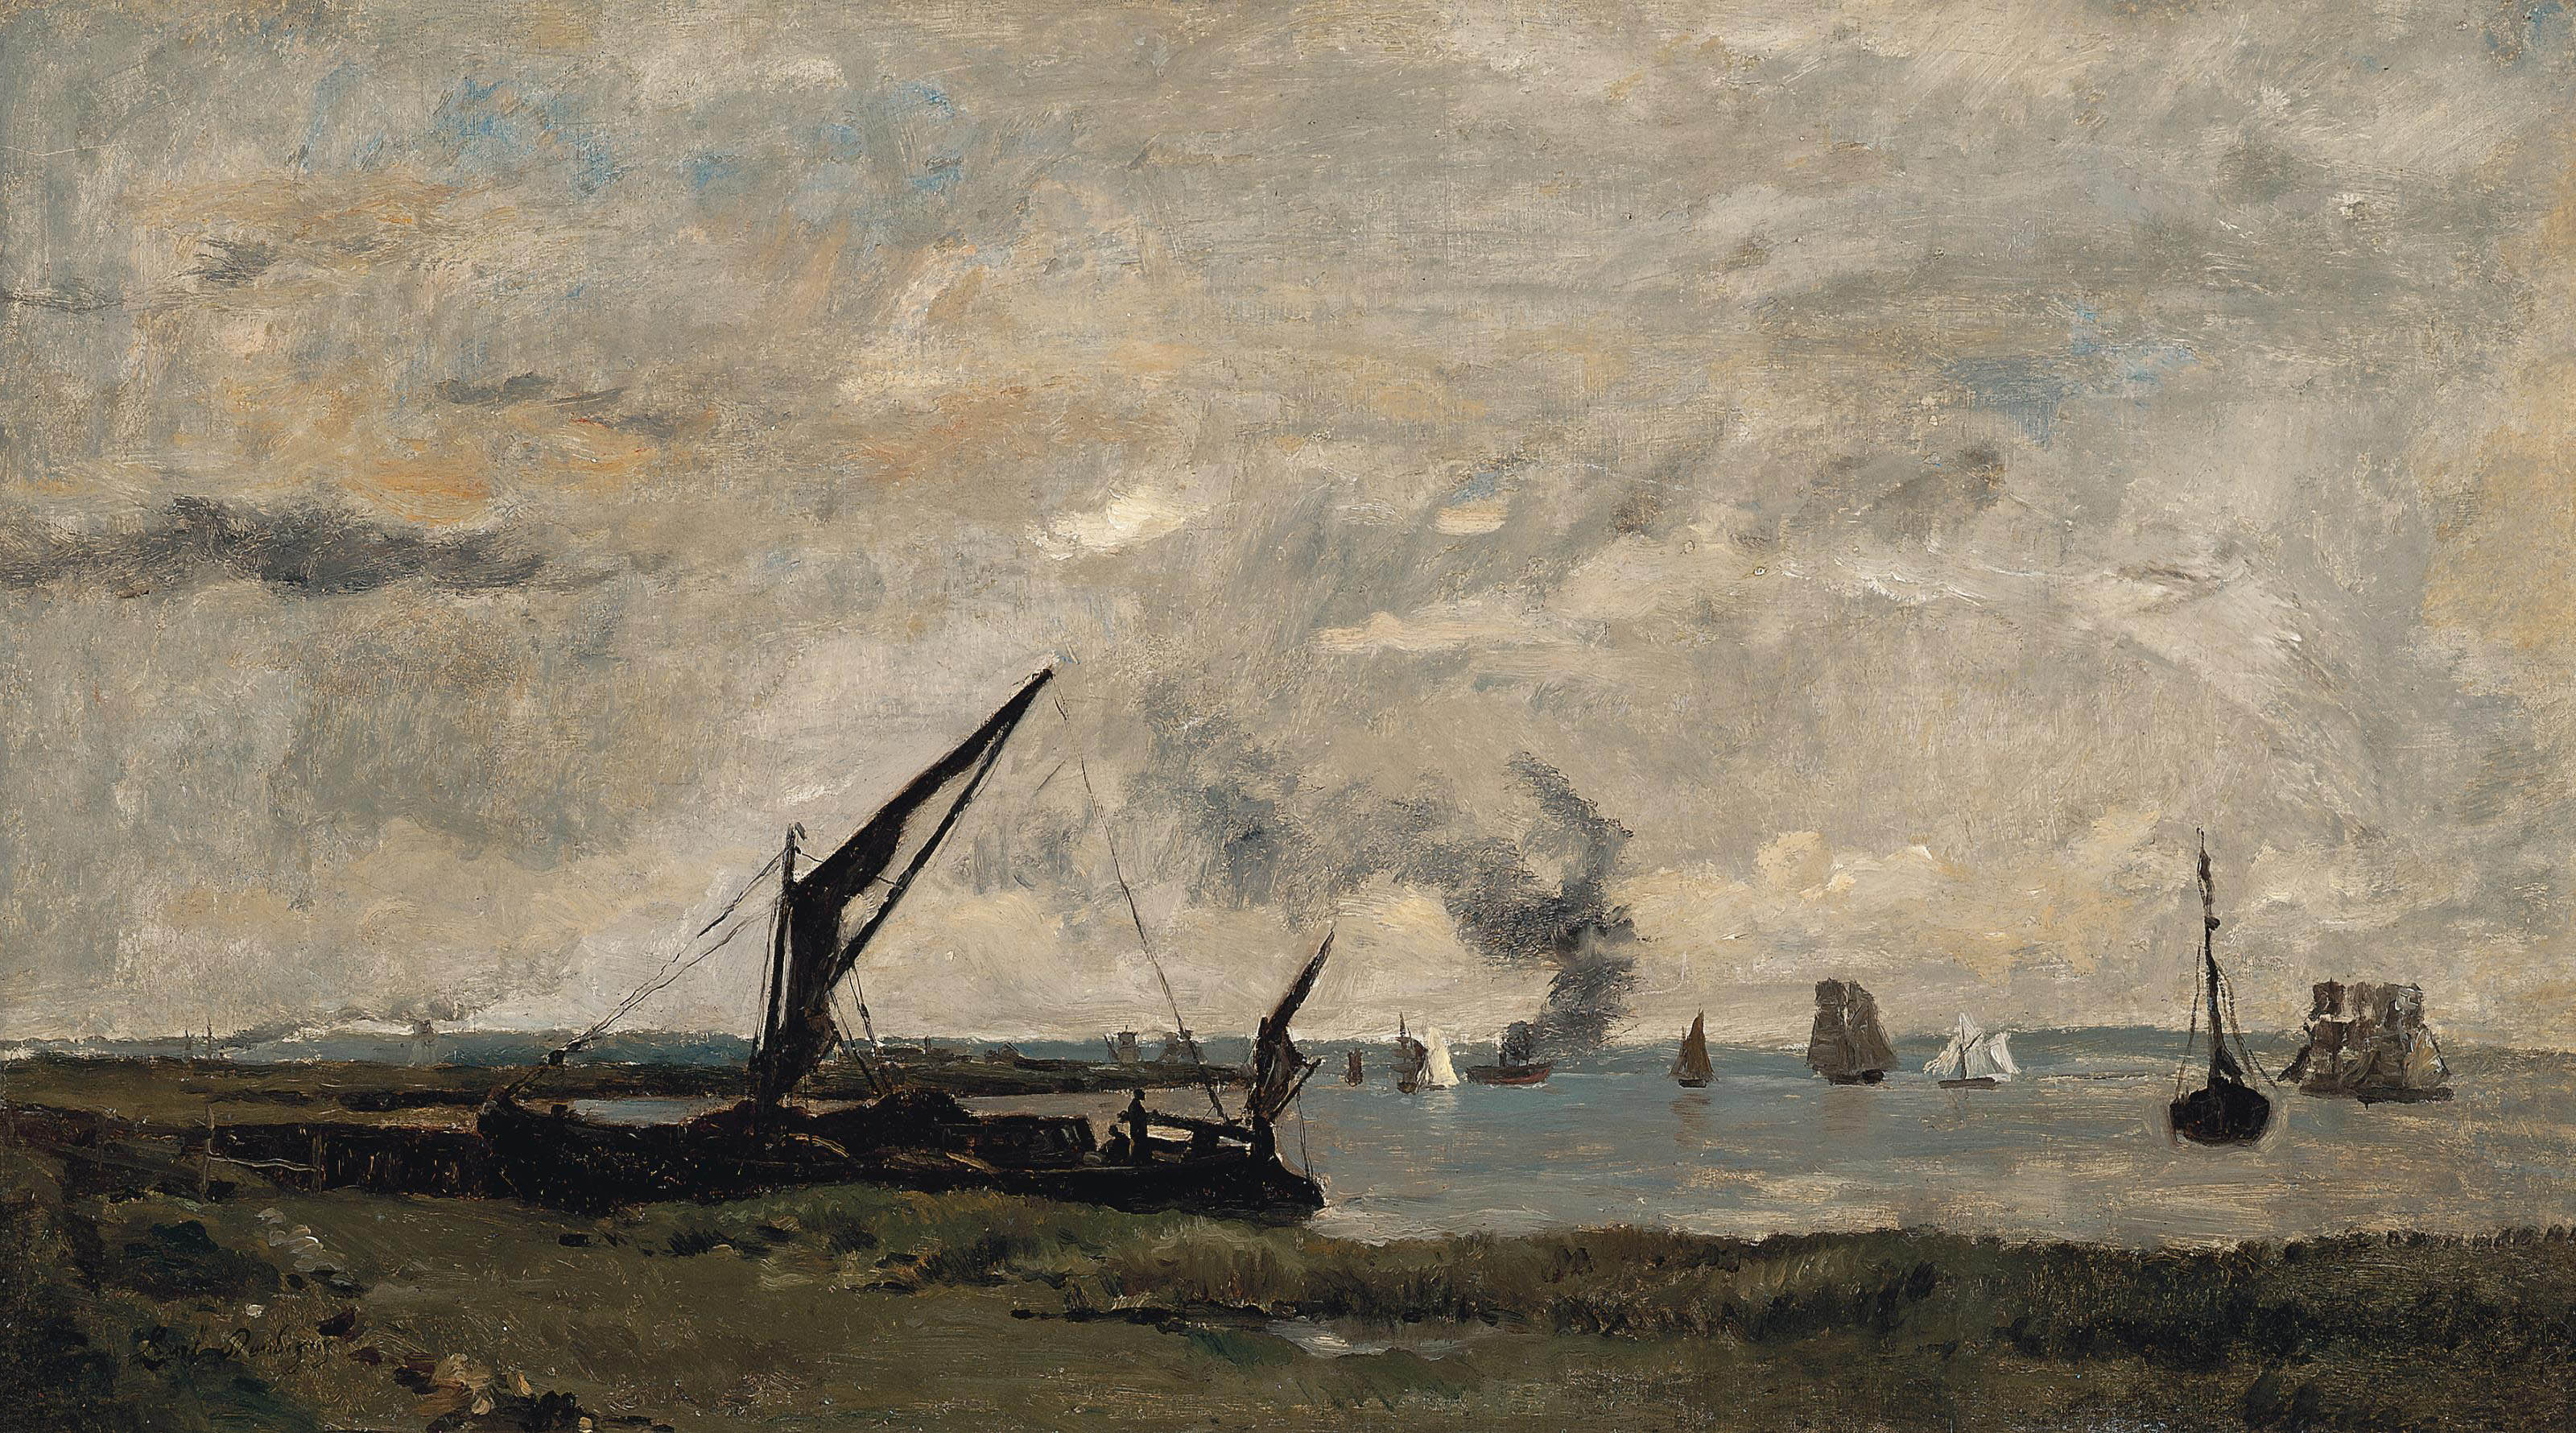 Boats and barges in the Thames Estuary